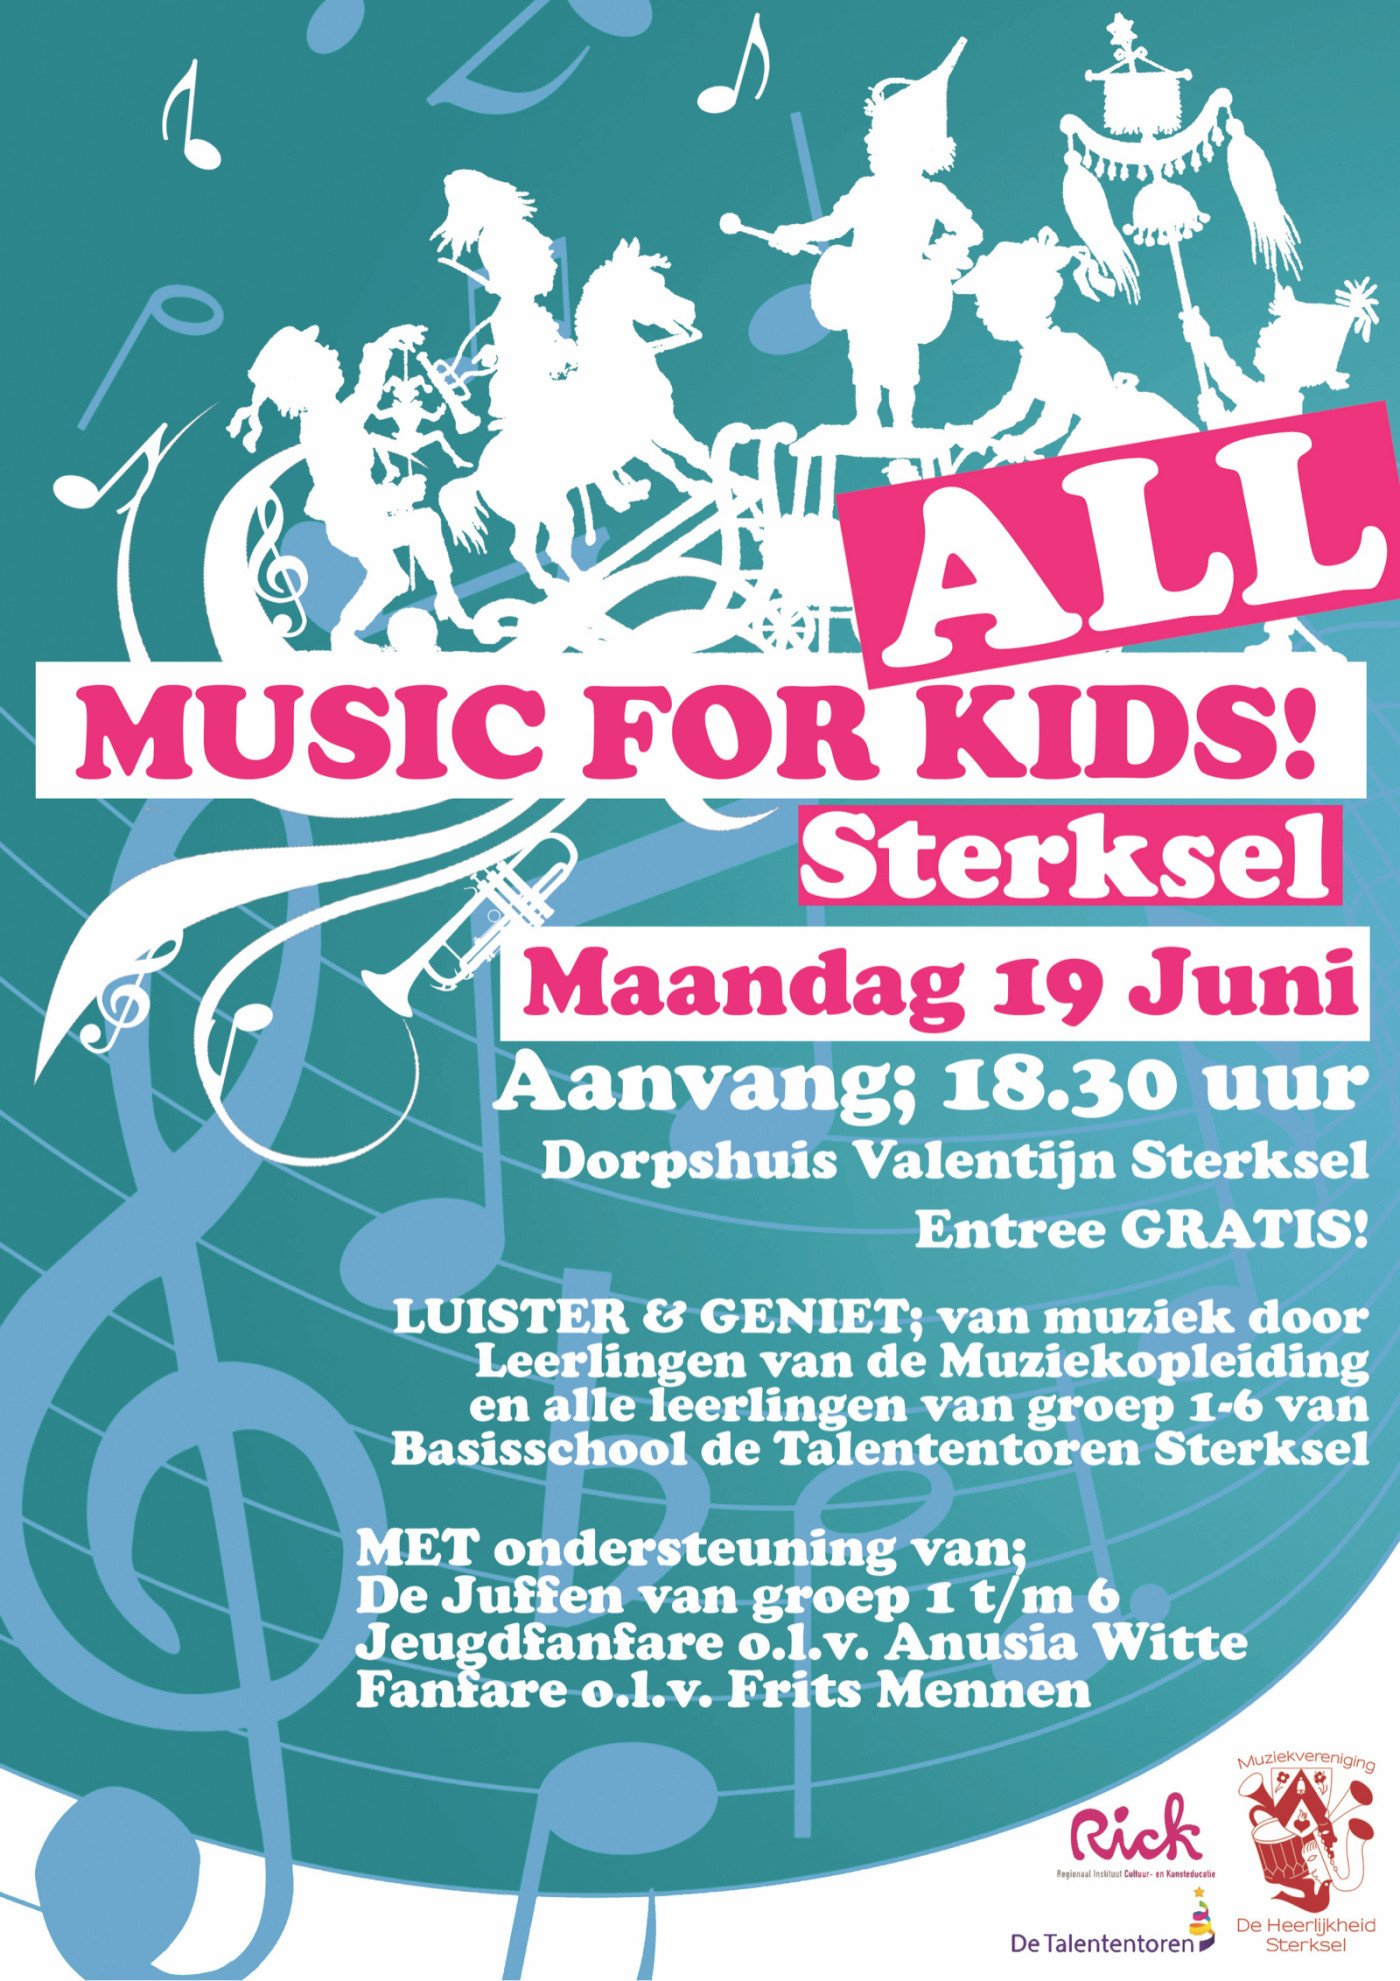 Music for all kids 19 juni Dorpshuis Valentijn